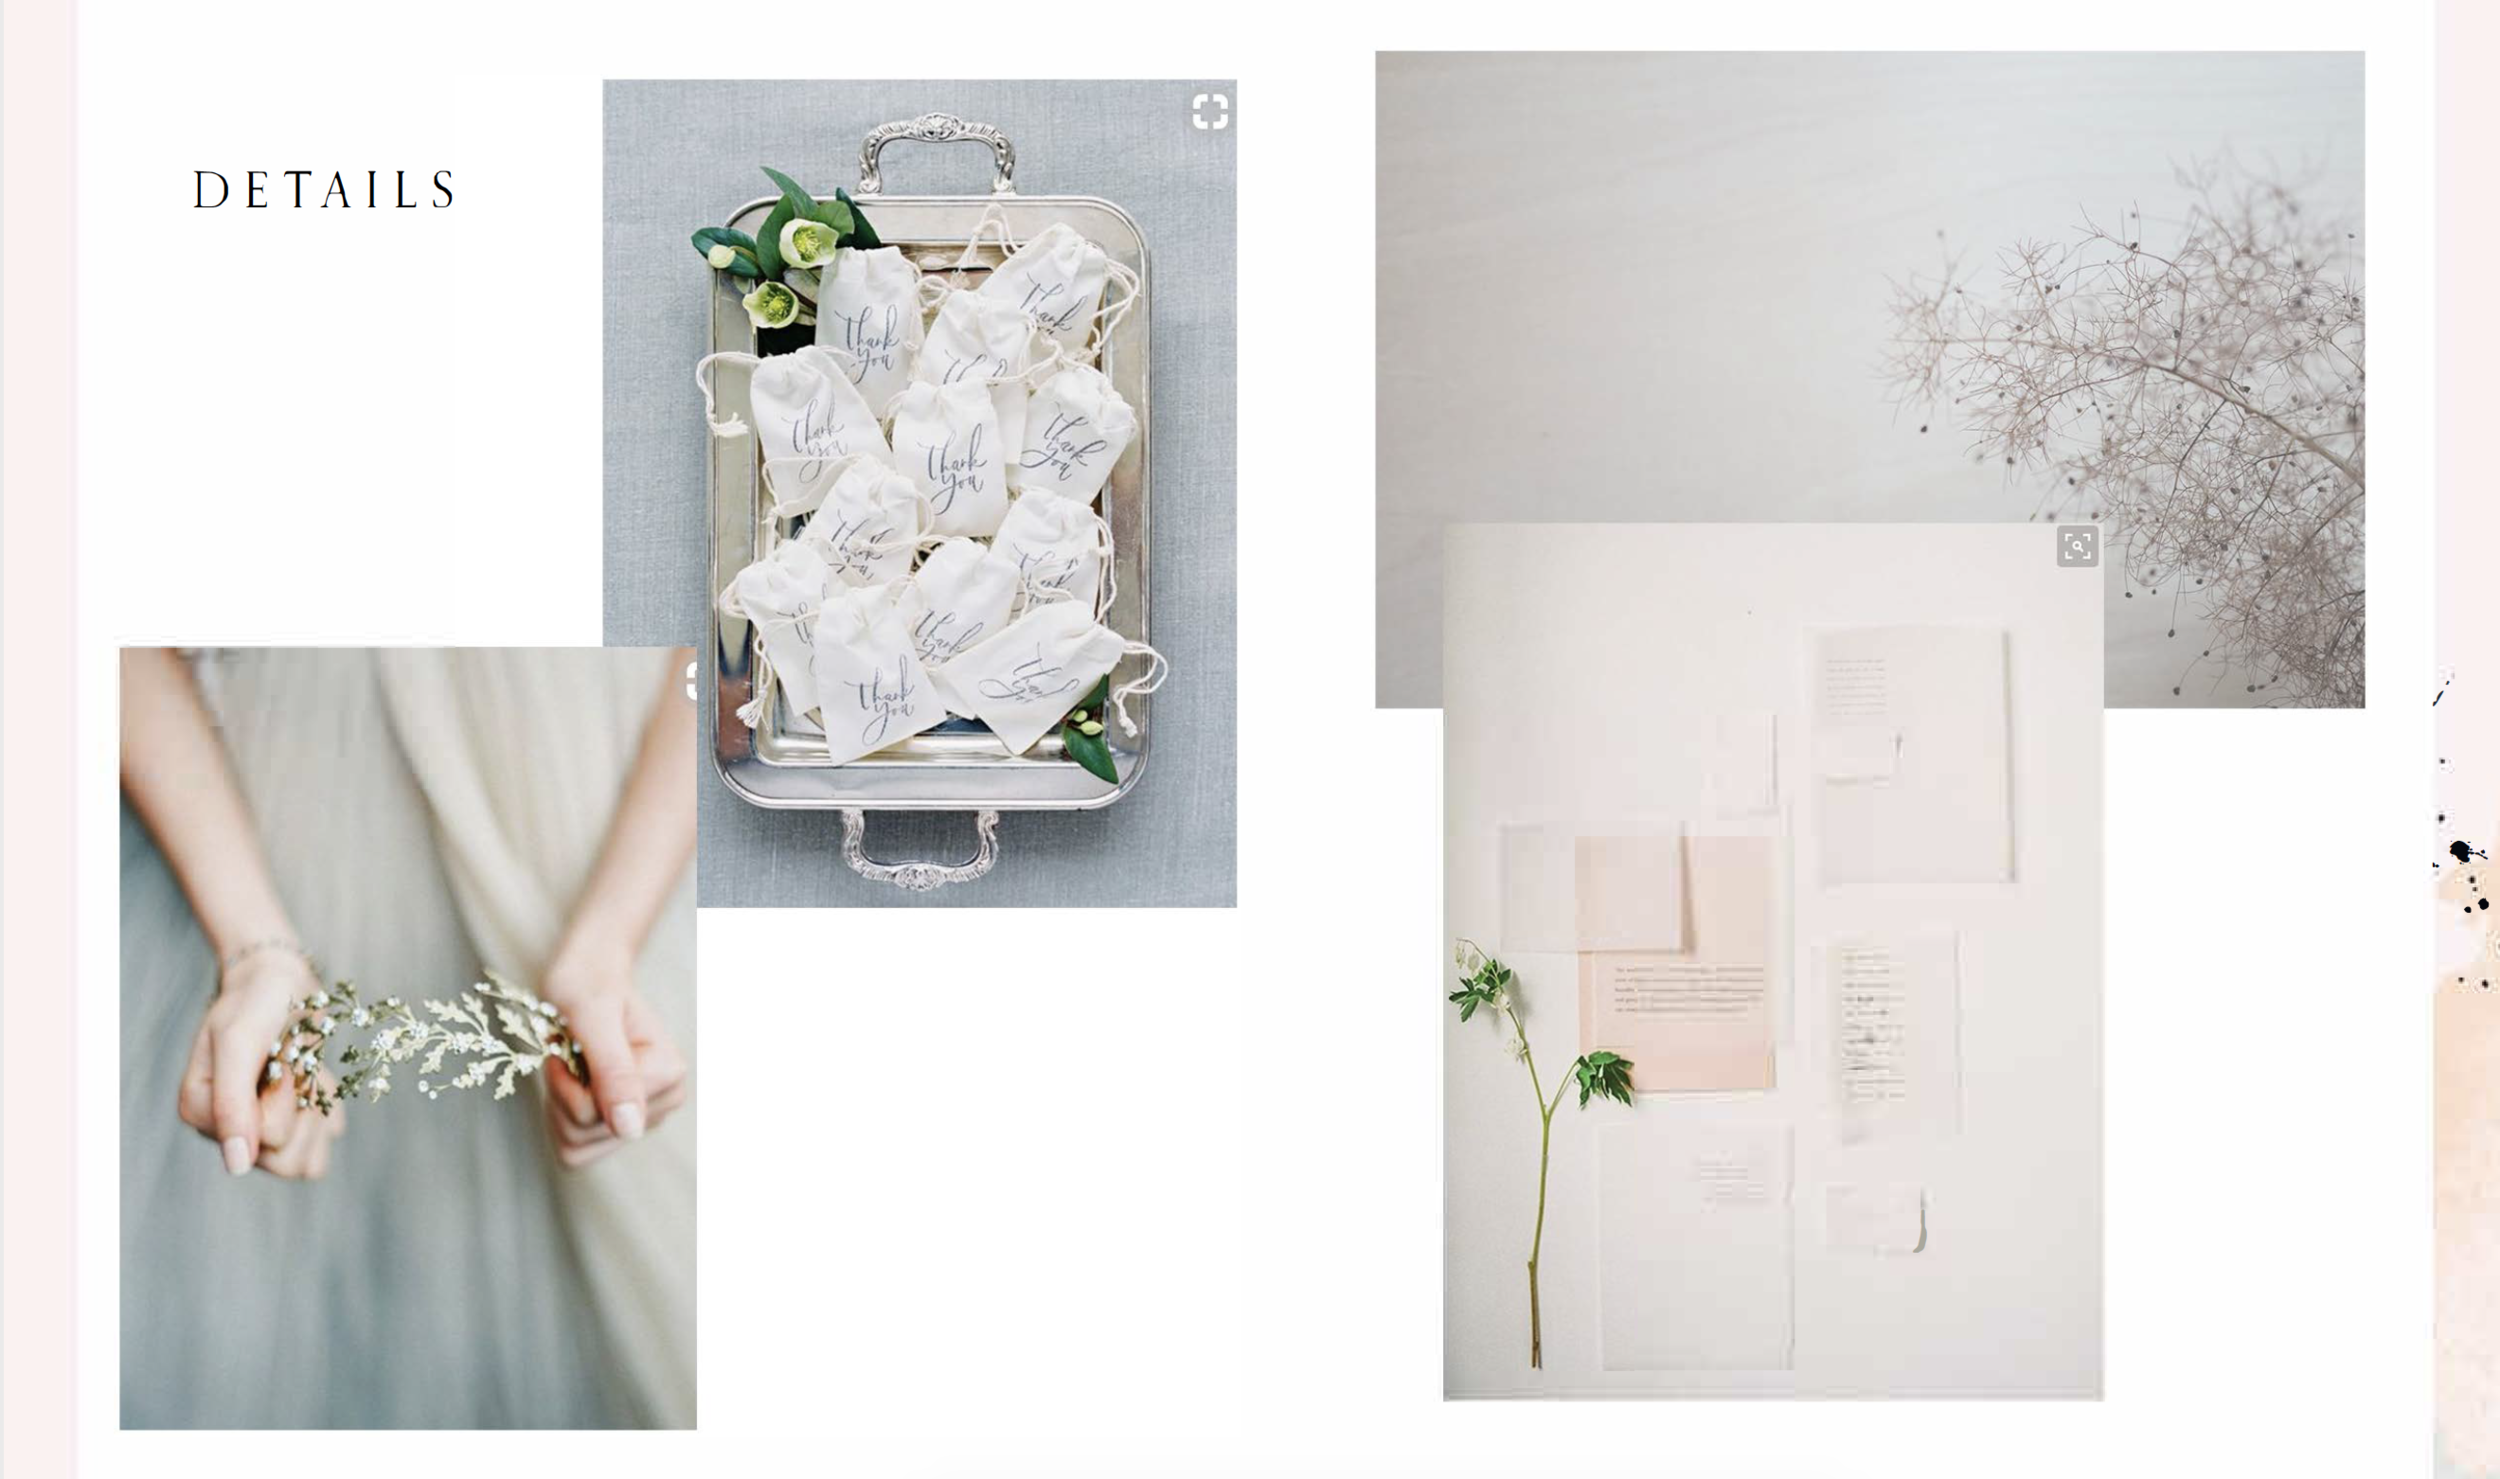 How I gather more details that don't always make it to the moodboard